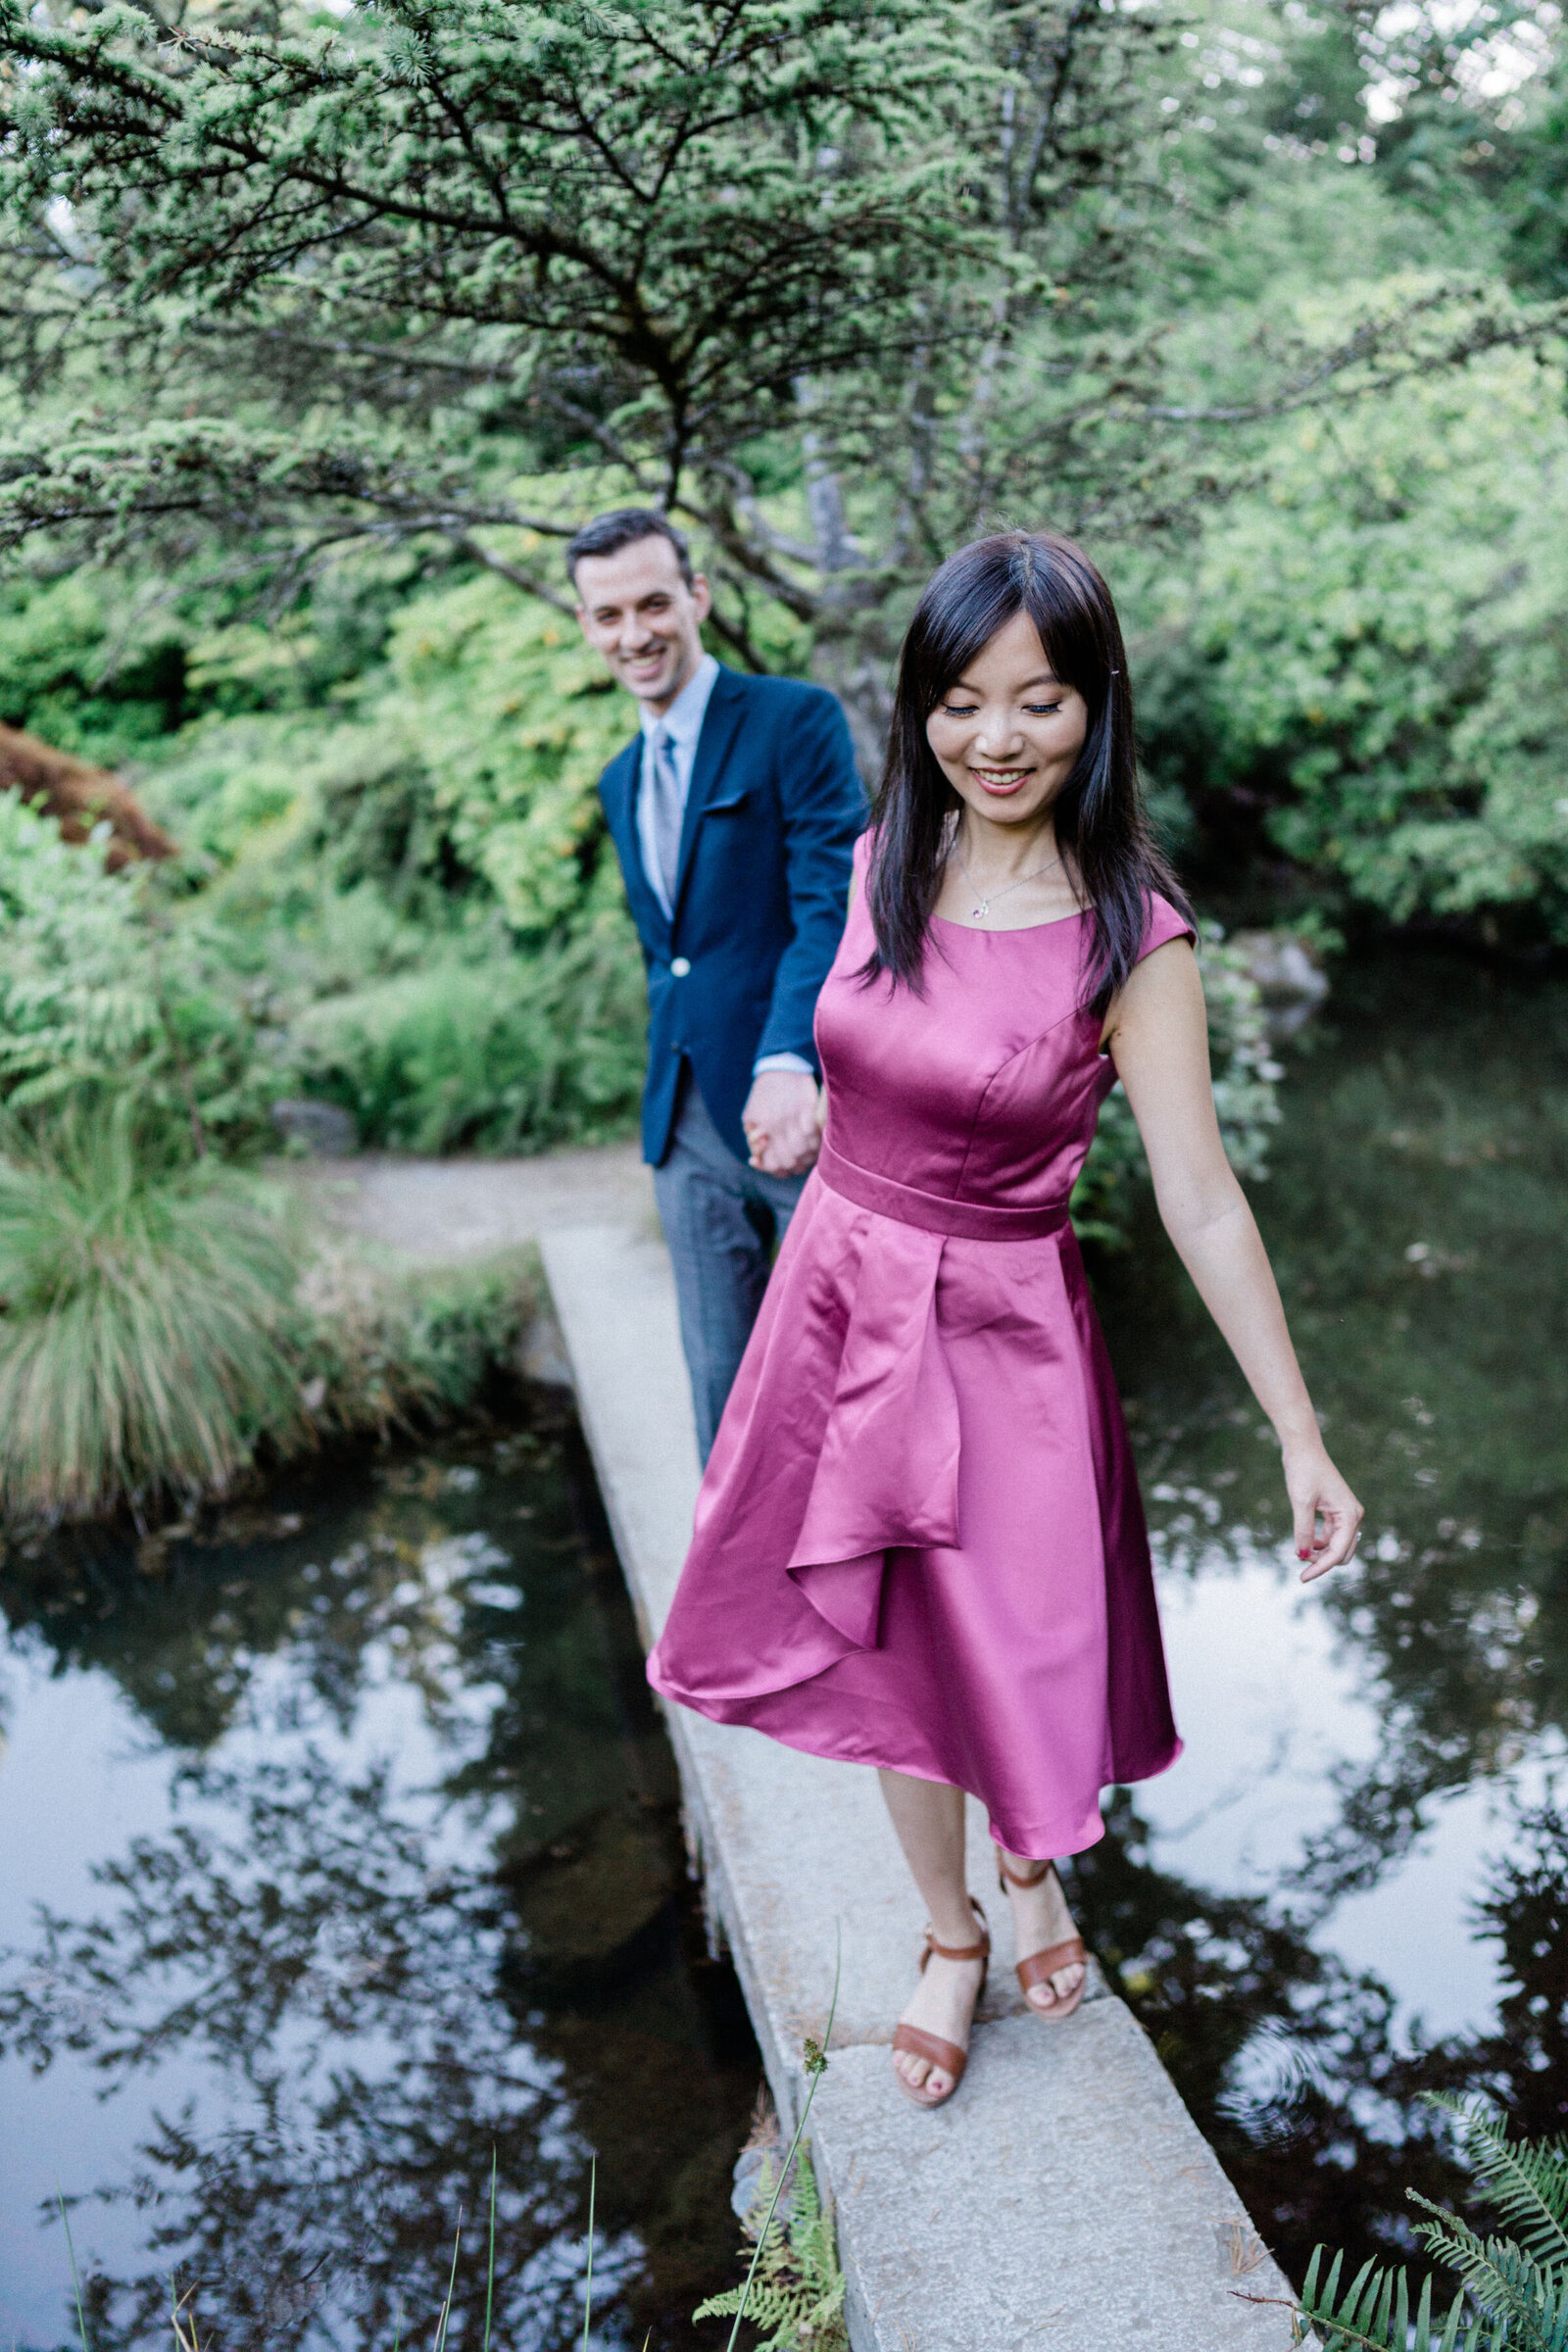 Wife leads husband across pond at Japanese garden Kubota Garden, the best spot for romantic engagement photos in Seattle